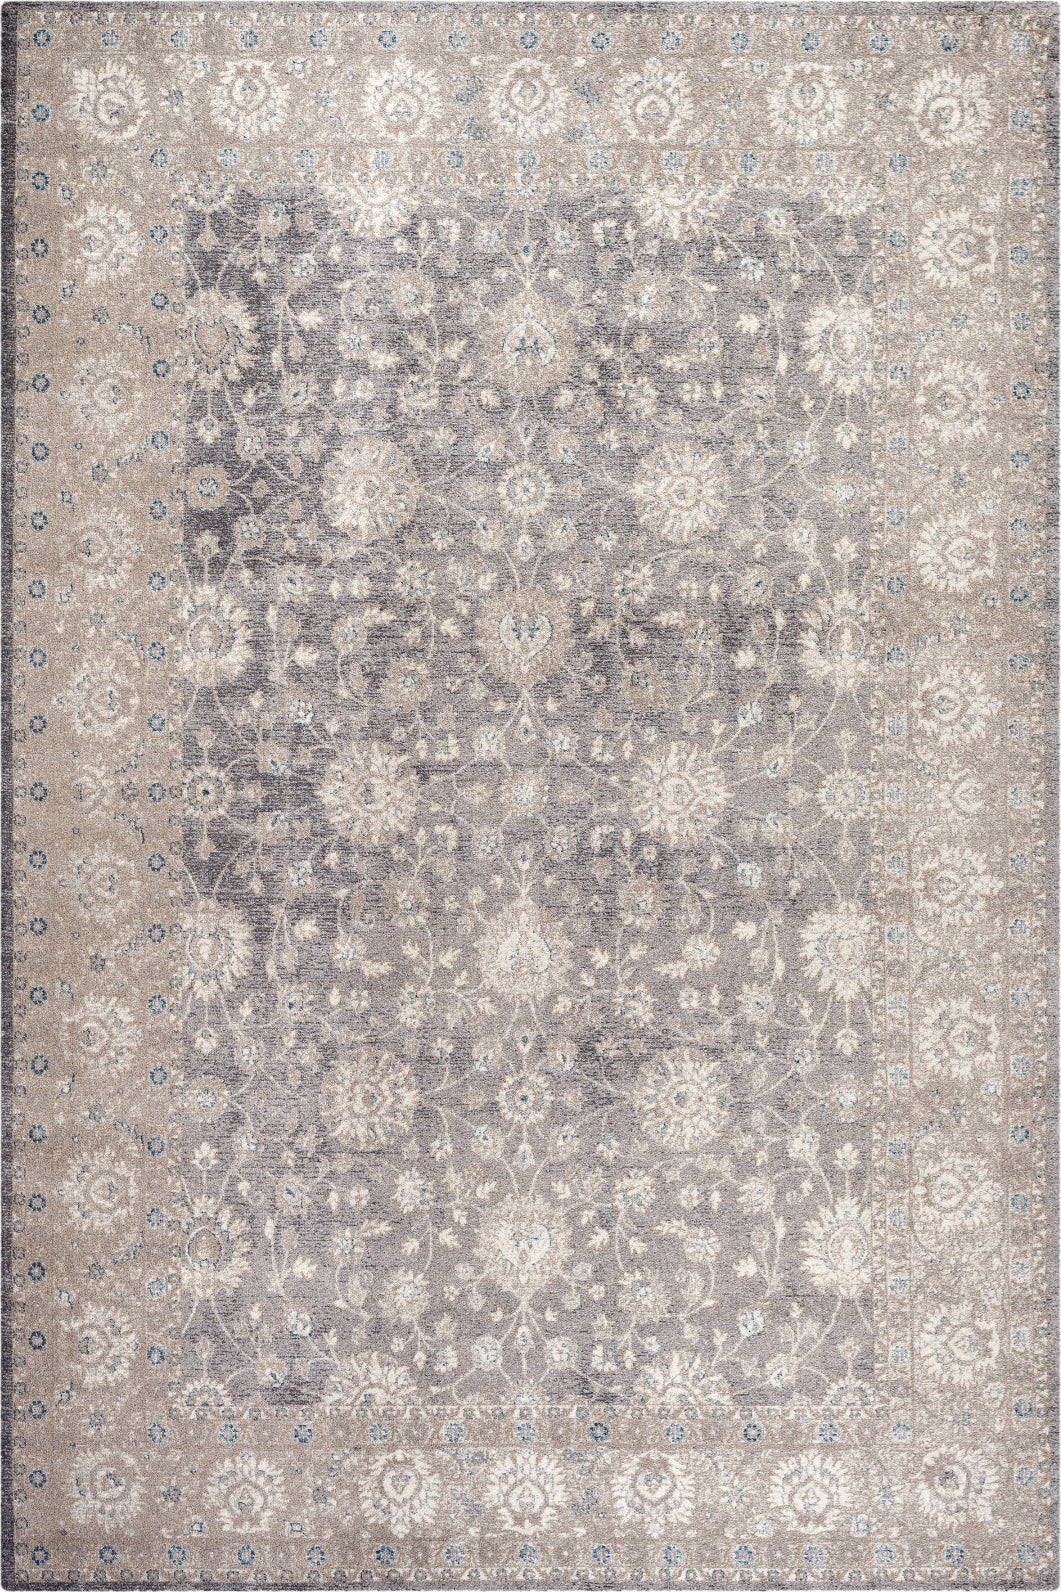 Safavieh Sofia SOF330B Light Grey/Beige Area Rug main image